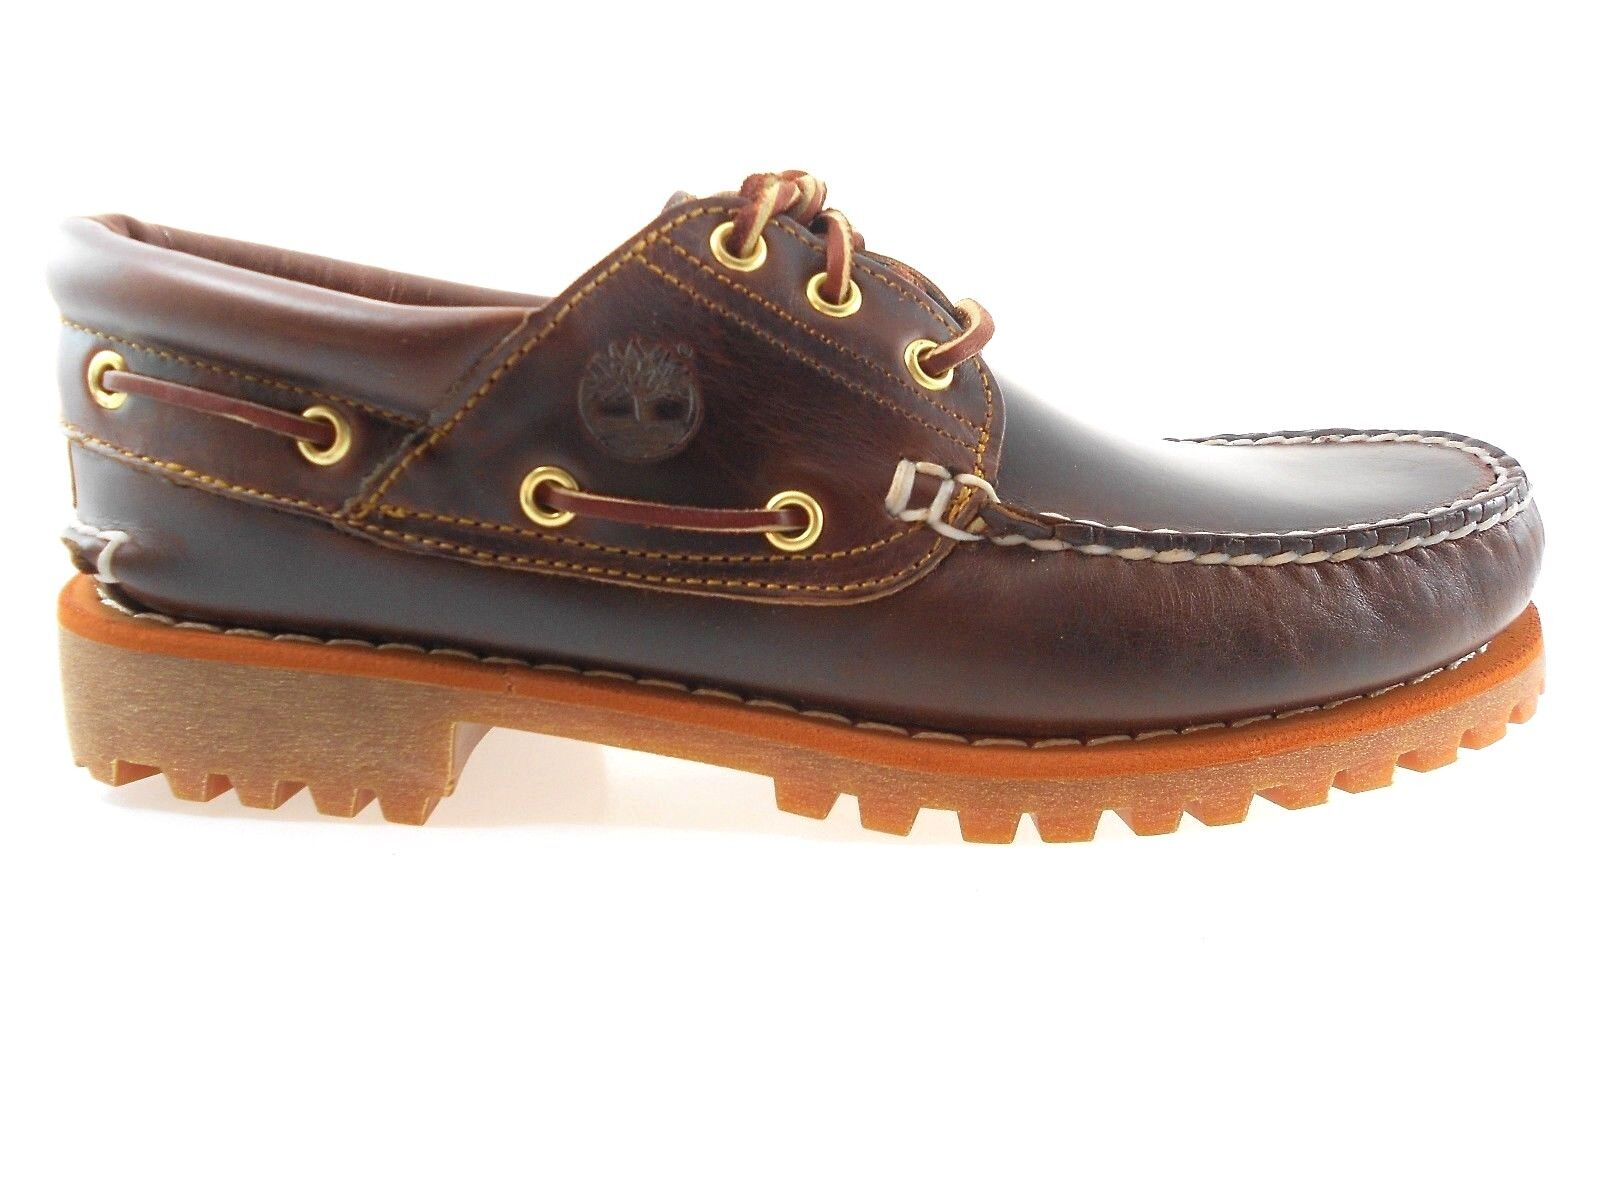 TIMBERLAND 6500A TFO CLASSIC MEN'S LUG LEATHER BOAT SHOES W(WIDE)